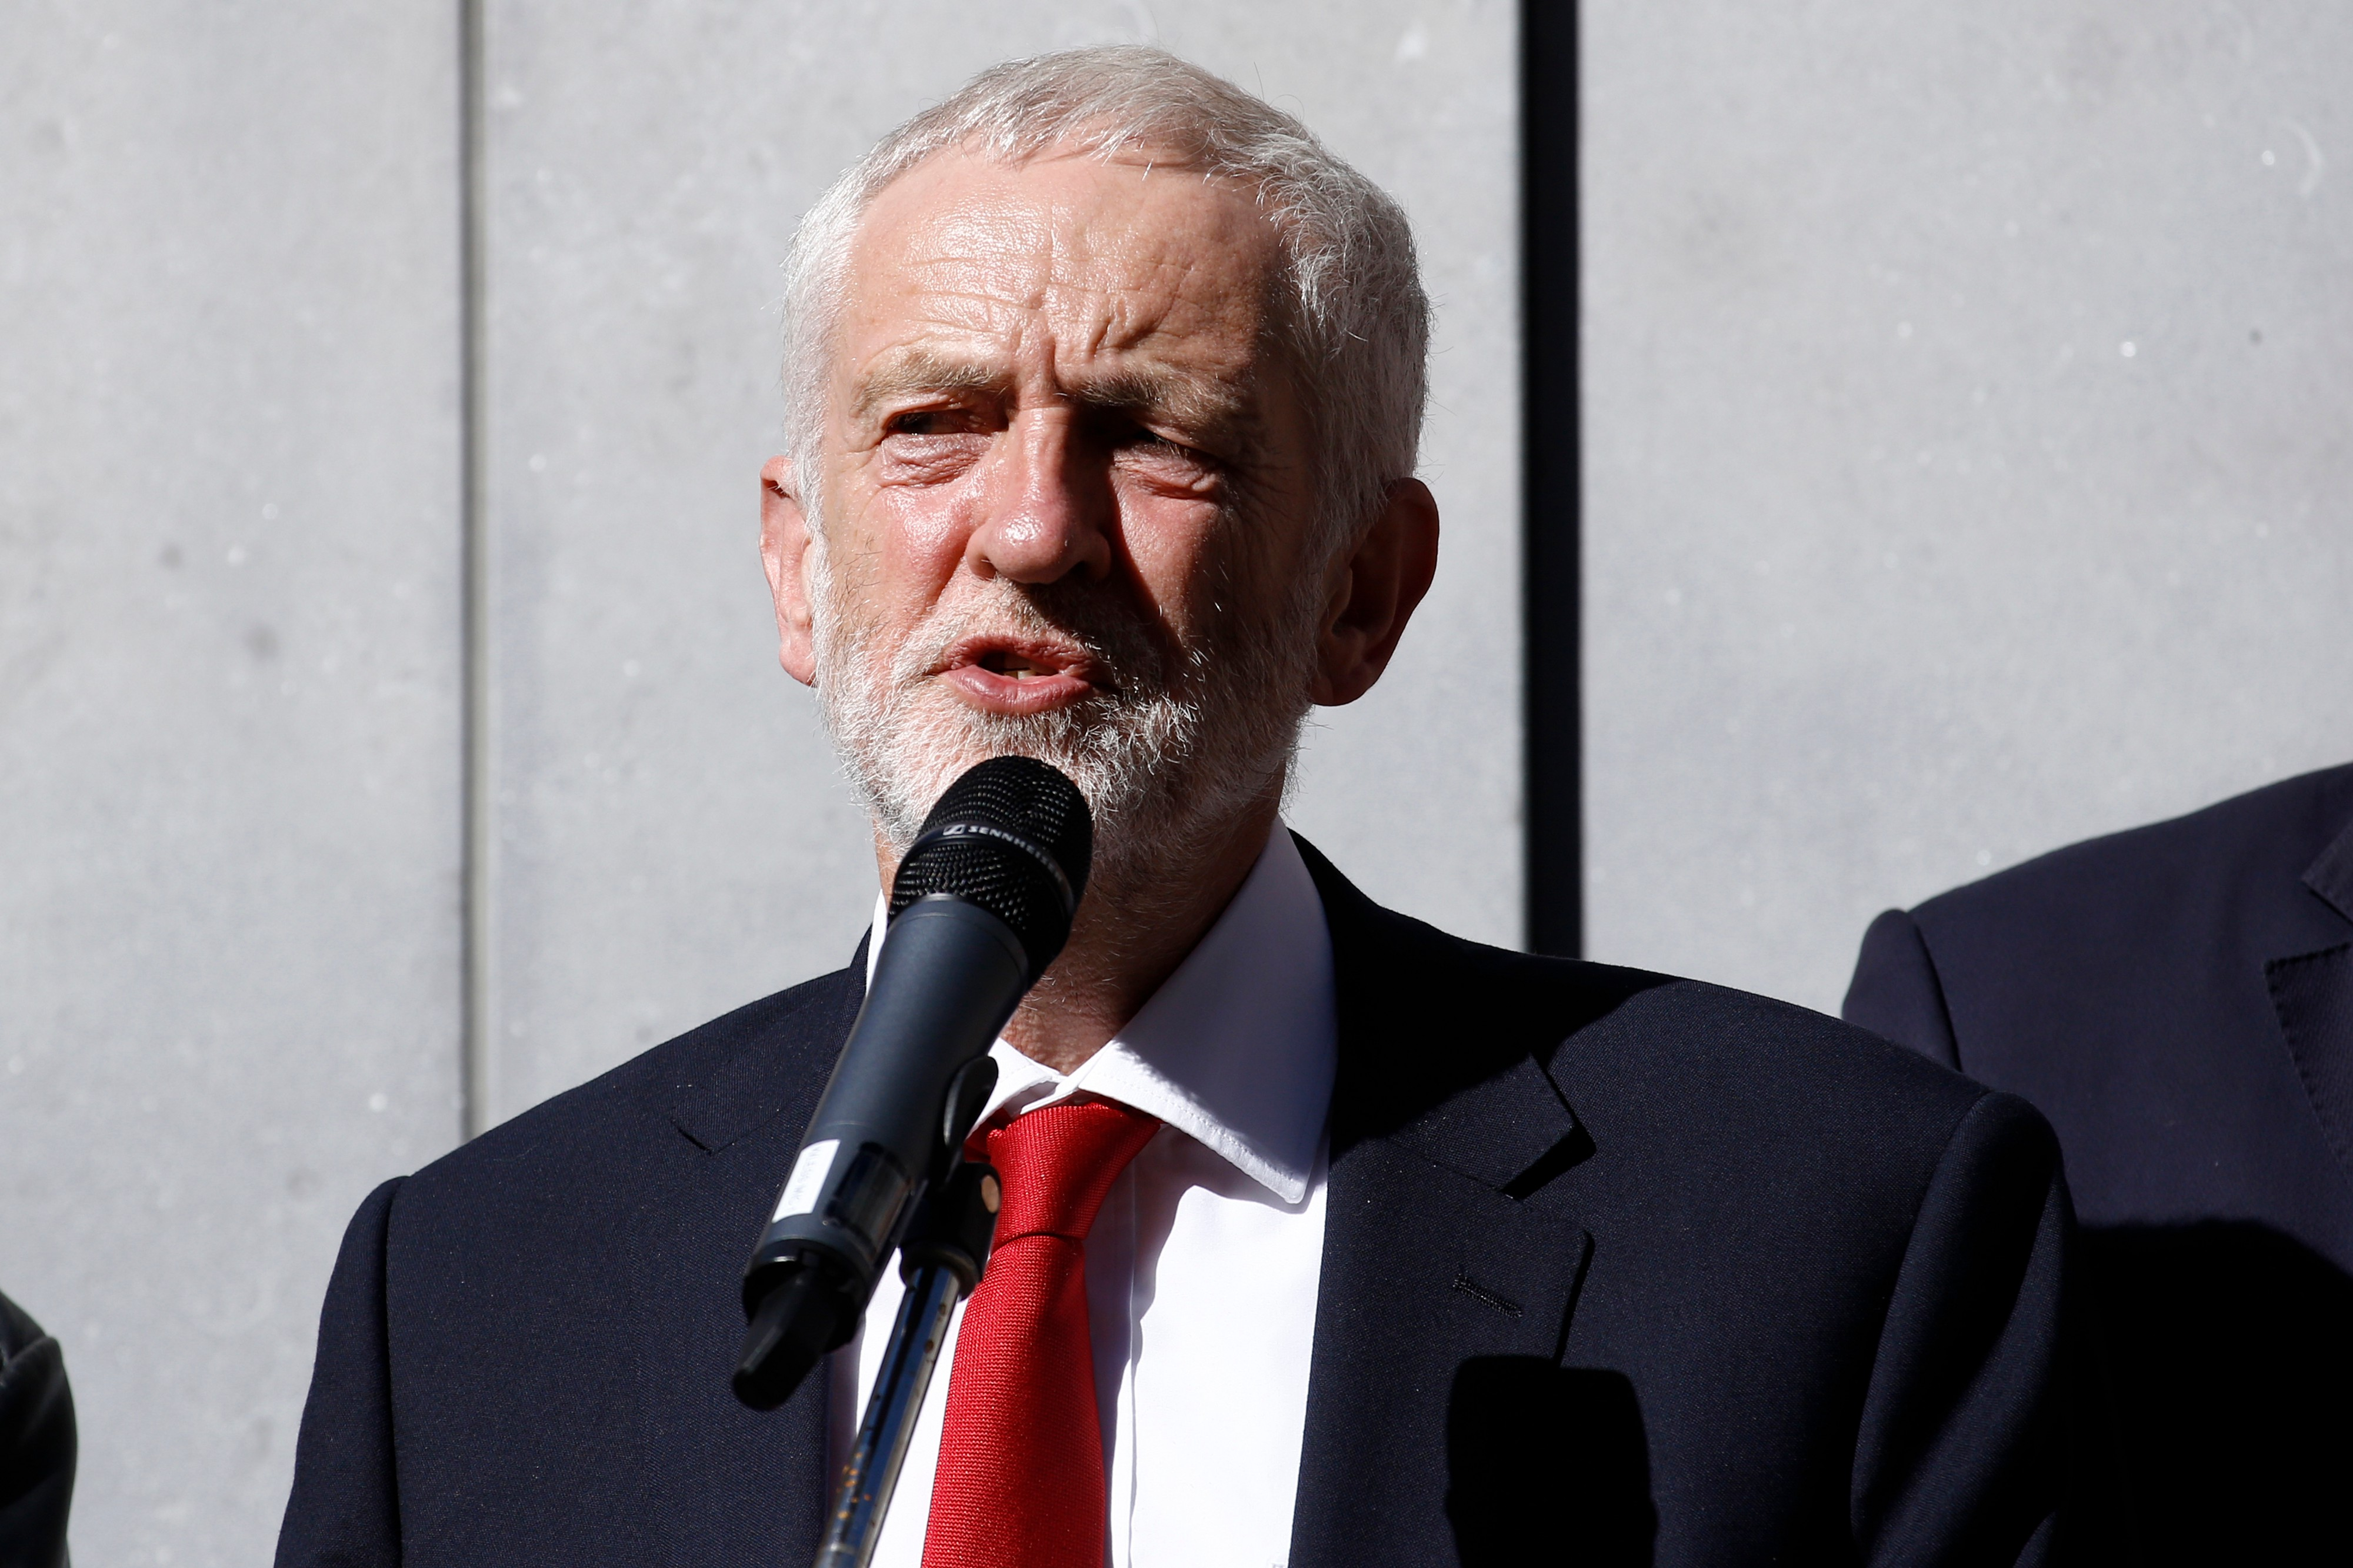 Photo of Jeremy Corbyn wearing a red tie with his black suit jacket and white shirt on while speaking into a mic